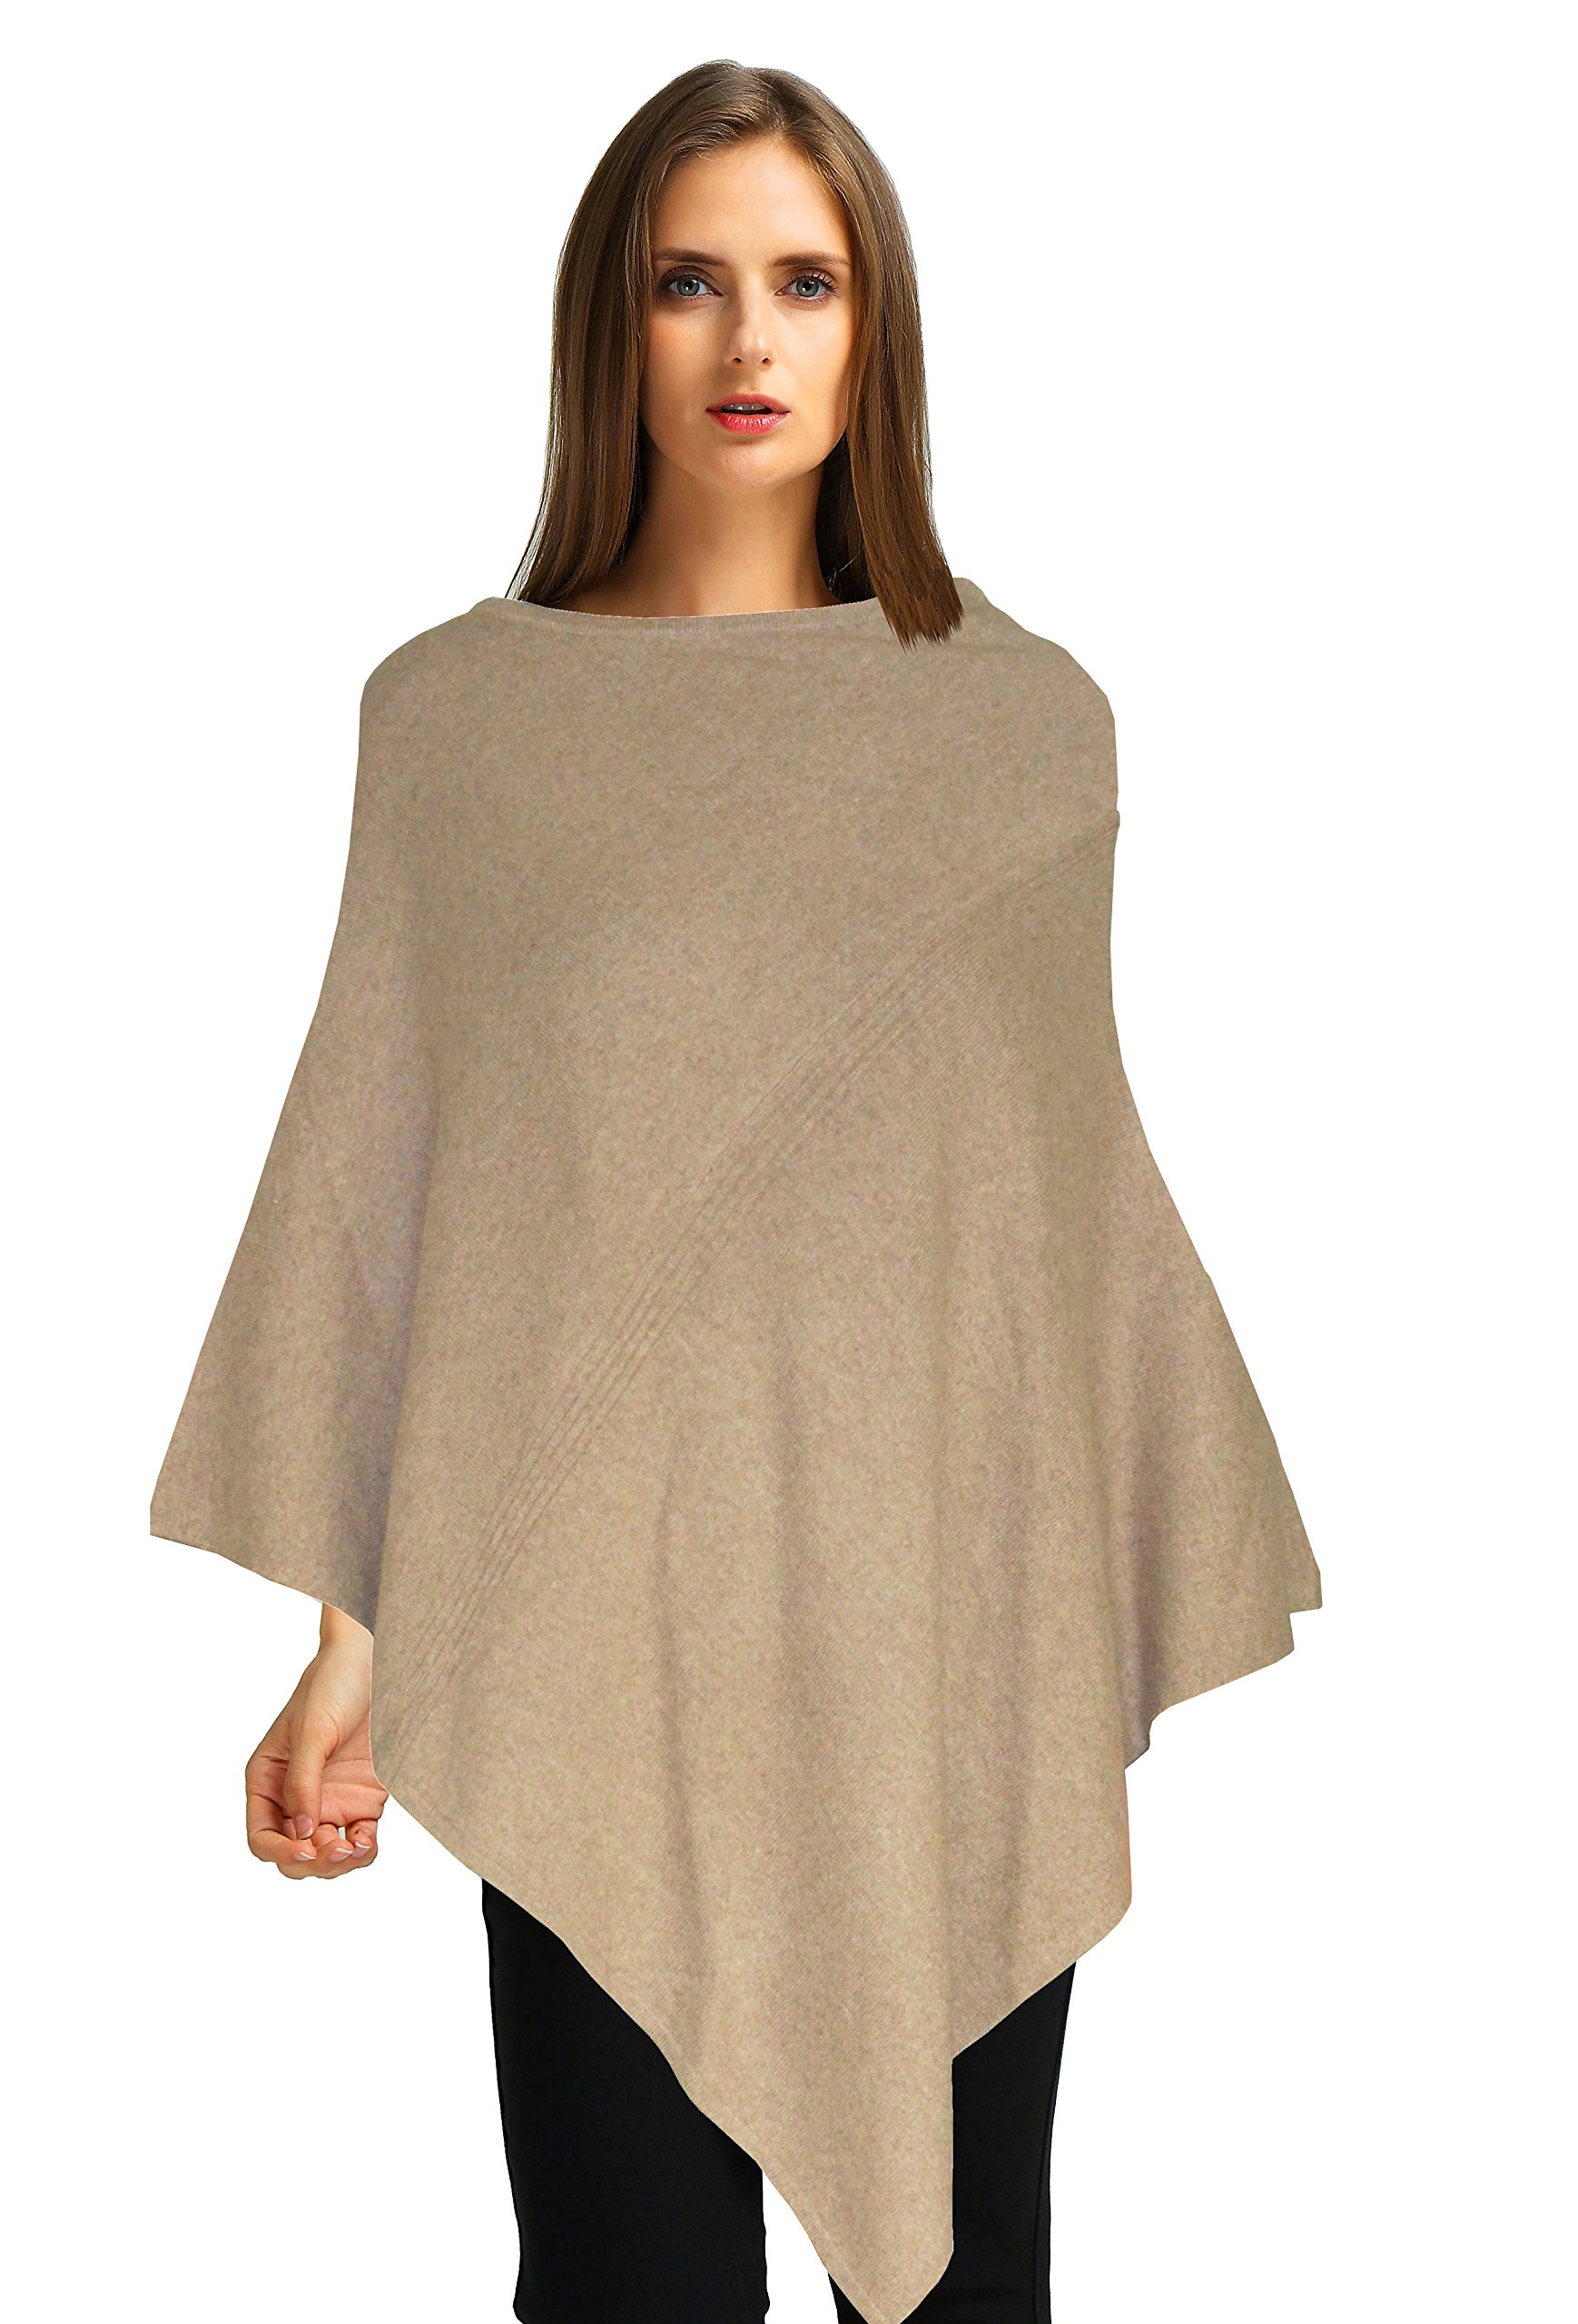 Ellettee, 100% Pure Cashmere Knit Pullover Poncho Dress Topper Travel Wrap Shawl Cape Sweater Cloak (DarkCamel) by Ellettee Collections